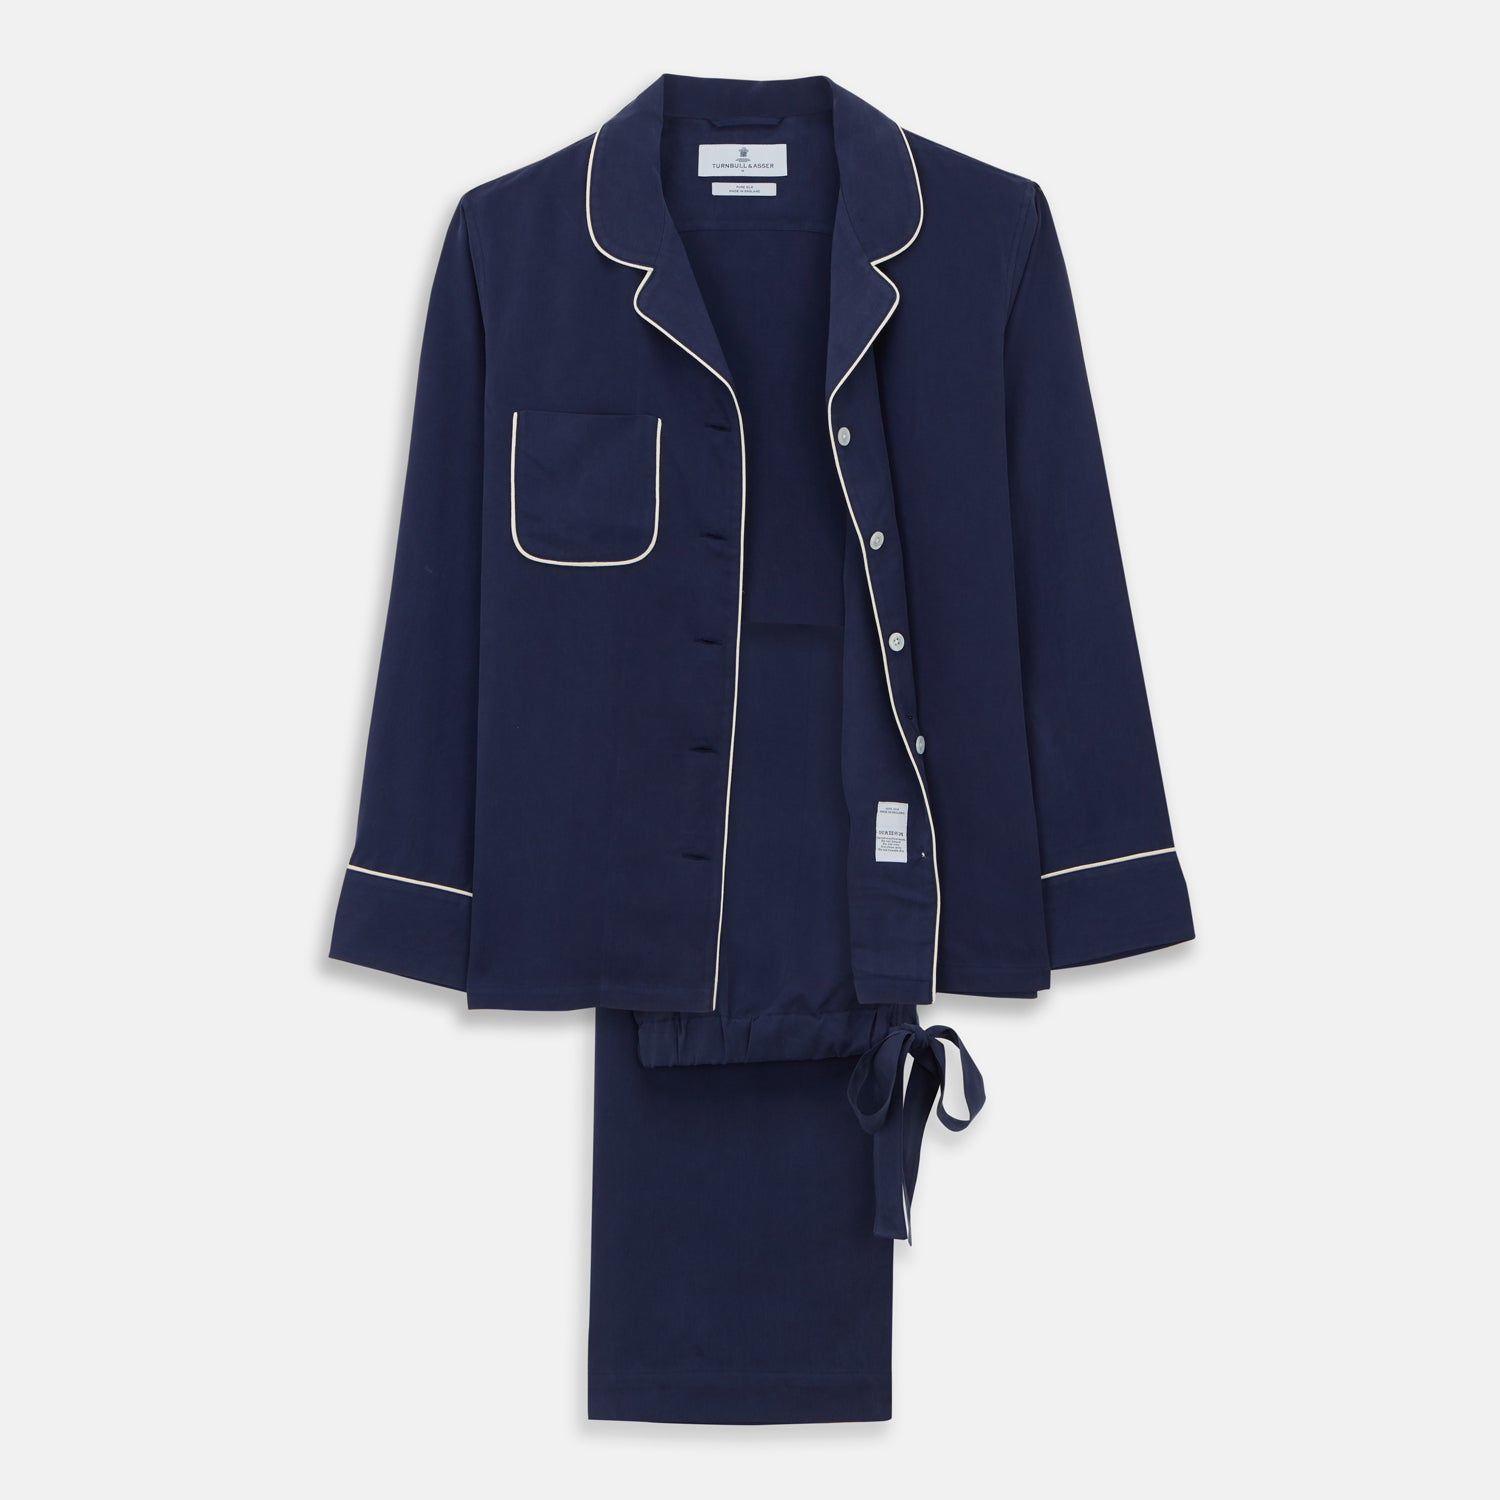 Women's Harriet Navy Silk Pyjama Set - L from Turnbull & Asser